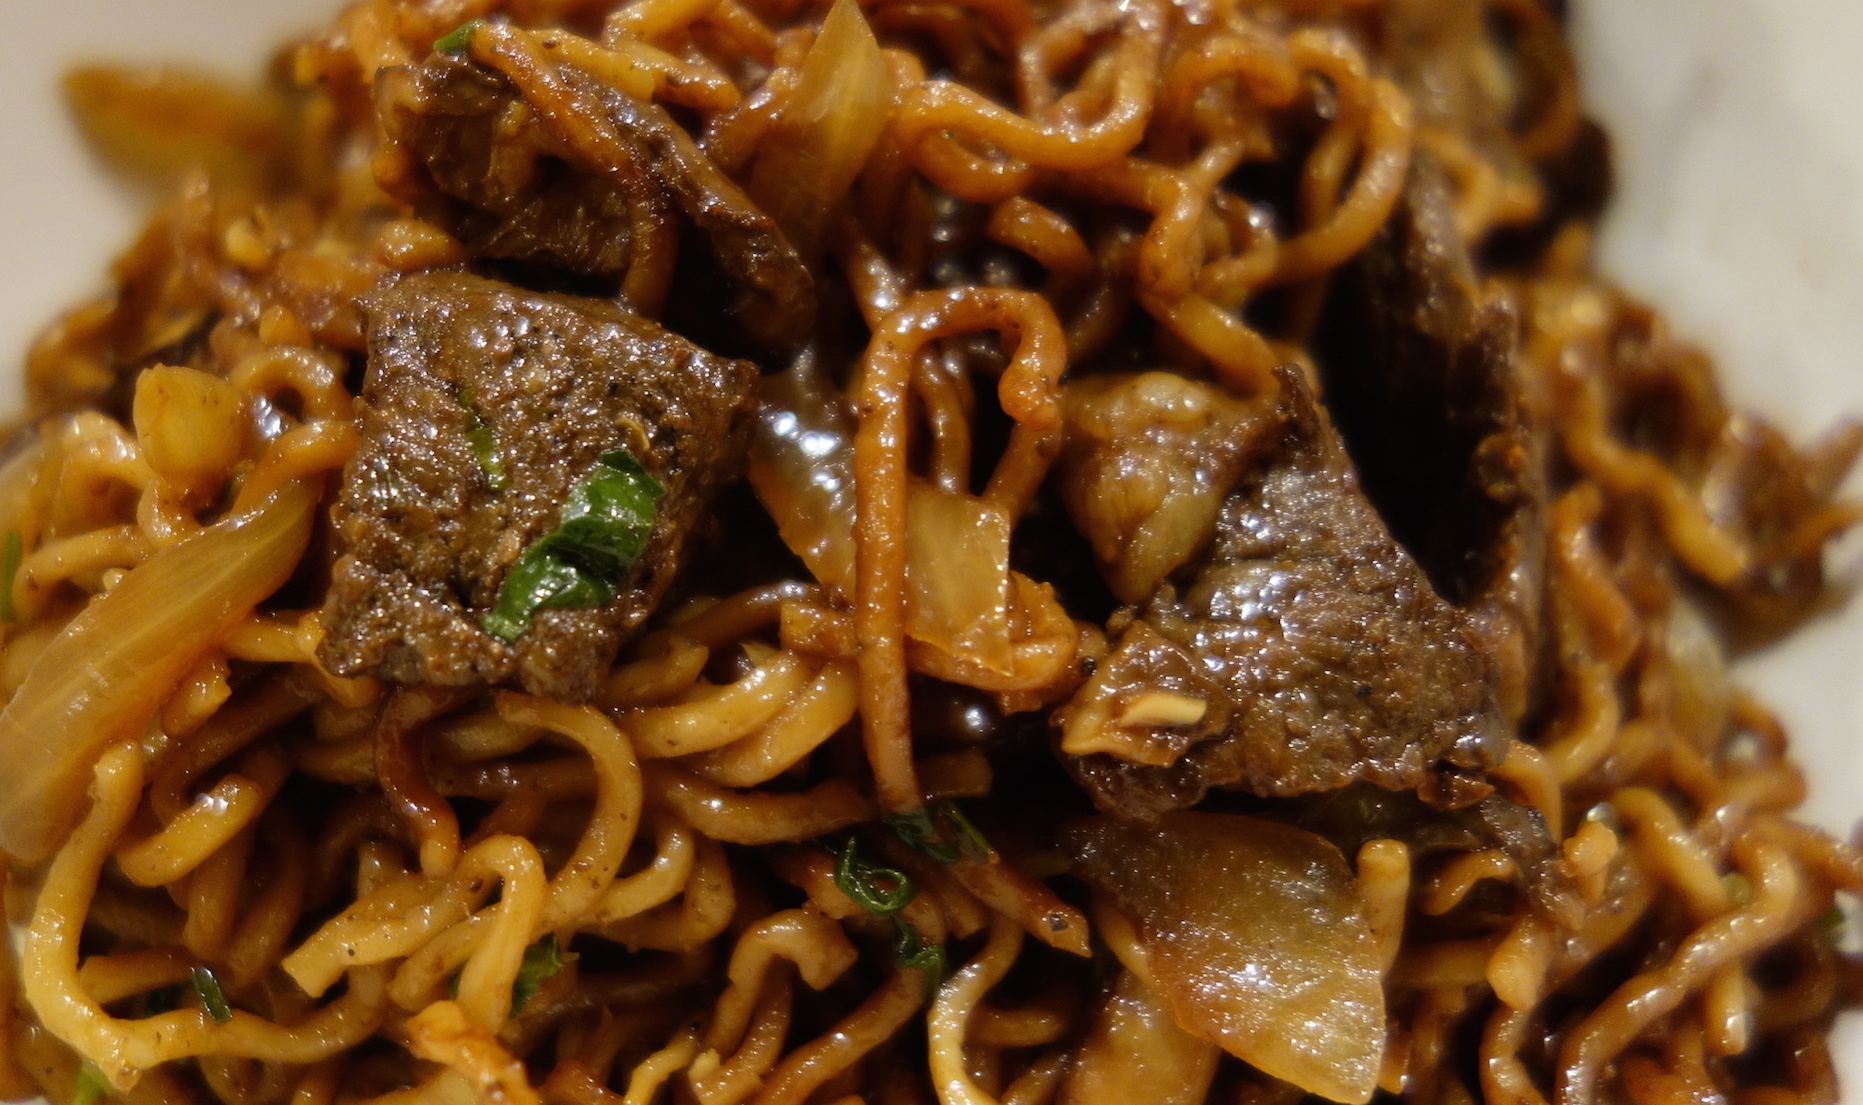 Stir-Fry-Noodles-with-Steak-and-Mushrooms